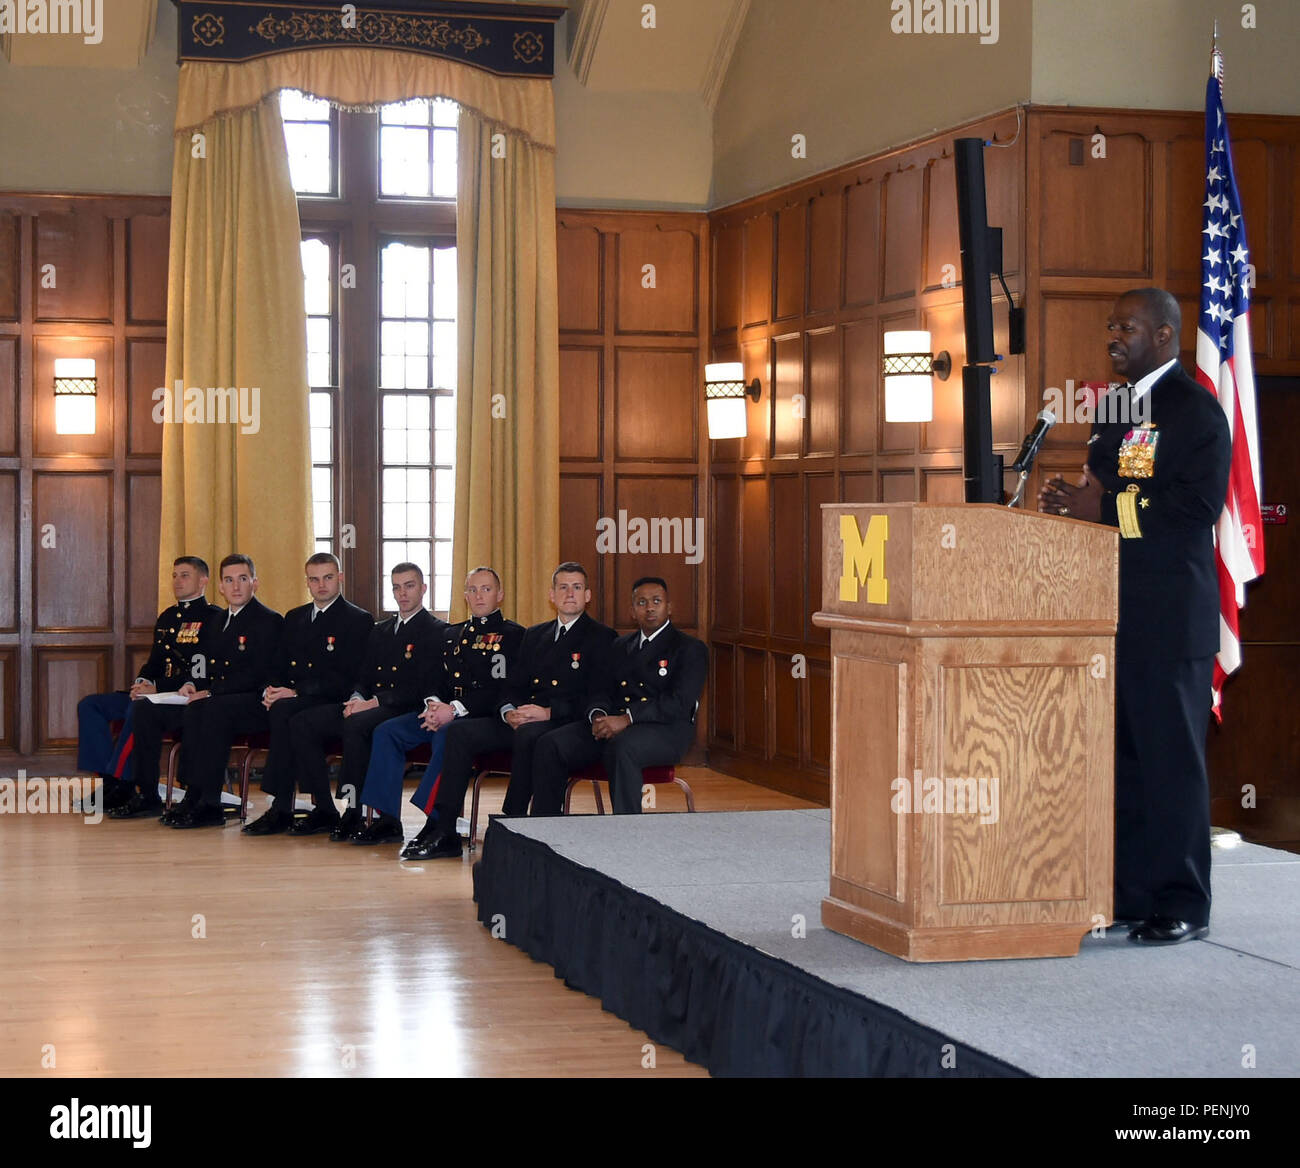 ANN ARBOR, Mich., (December 18, 2015) – Rear Adm. Stephen C. Evans, commander, Naval Service Training Command (NSTC), gives the keynote speech to University of Michigan Naval Reserve Officer Training Corps (NROTC) midshipmen and their family members and friends during a commissioning ceremony in The Michigan League building on campus here, Dec. 18. (Official U.S. Navy photo Scott A. Thornbloom) - Stock Image